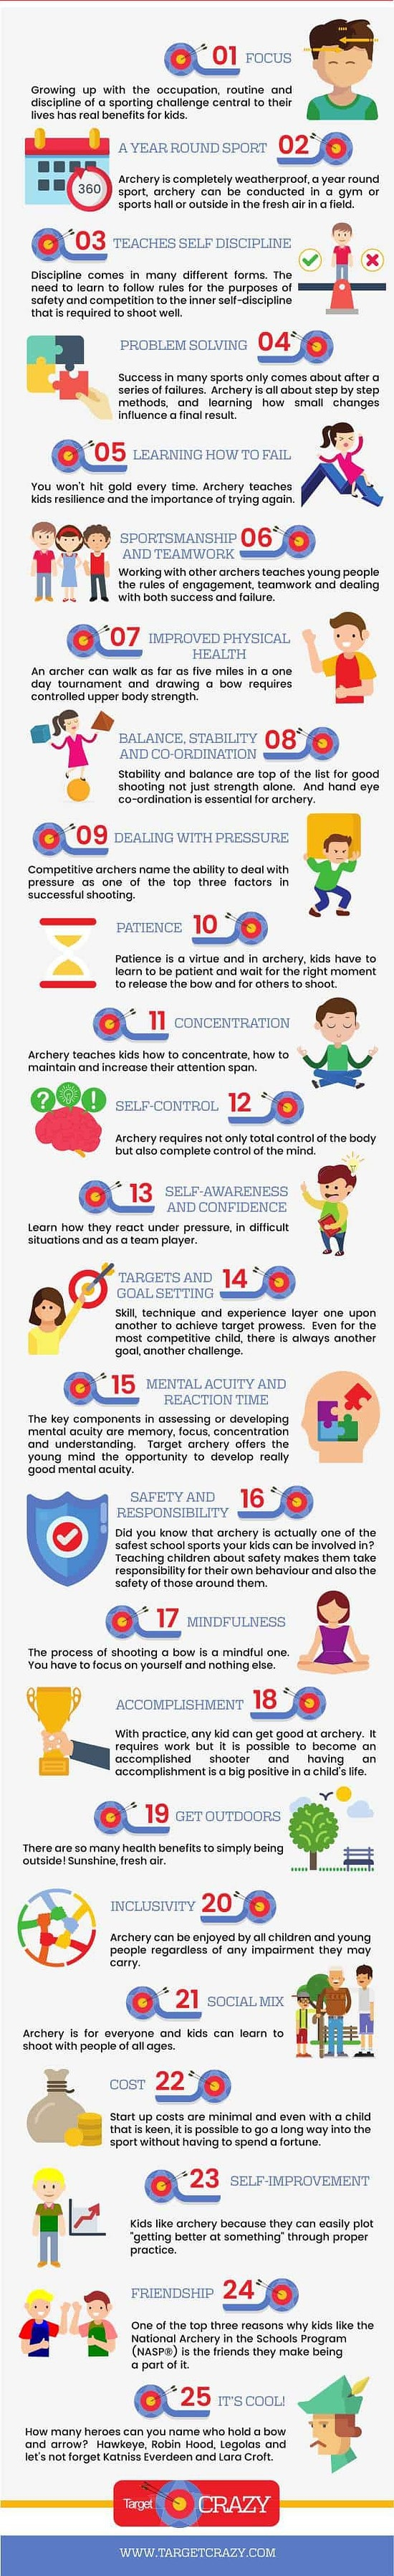 25 reasons archery is good for kids infographic